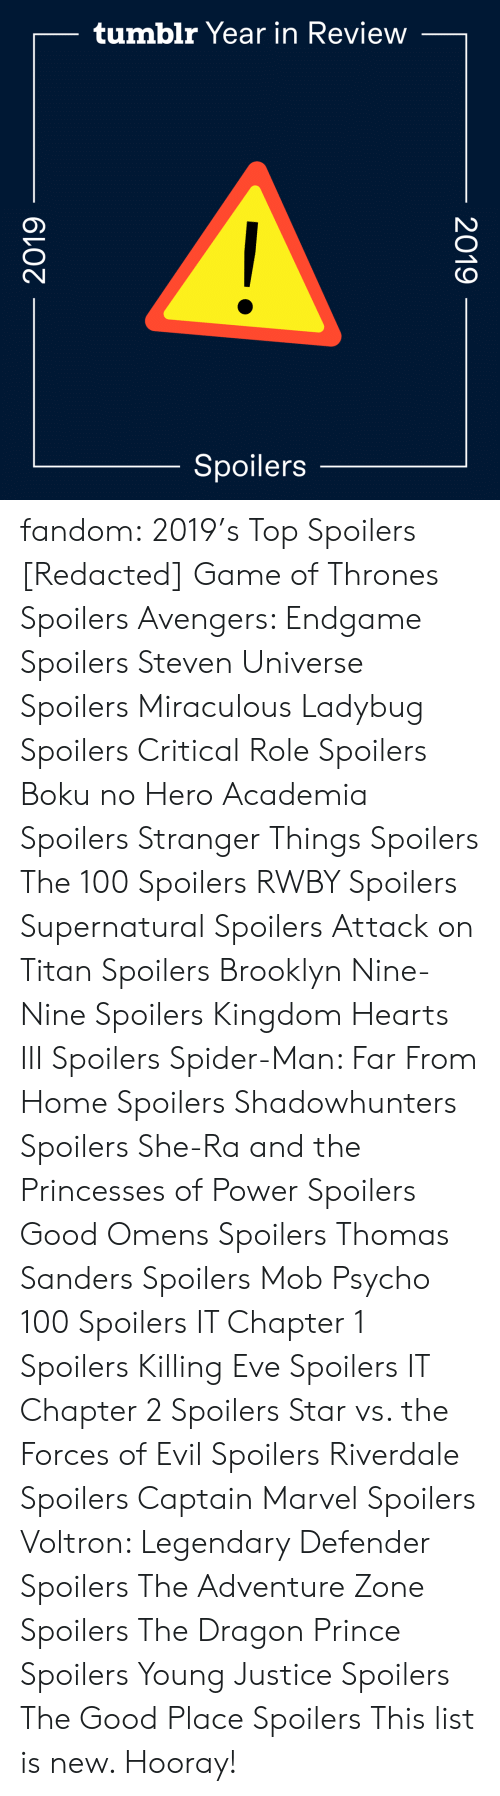 mob: tumblr Year in Review  Spoilers  2019  2019 fandom:  2019's Top Spoilers  [Redacted]  Game of Thrones Spoilers  Avengers: Endgame Spoilers  Steven Universe Spoilers  Miraculous Ladybug Spoilers  Critical Role Spoilers  Boku no Hero Academia Spoilers  Stranger Things Spoilers  The 100 Spoilers  RWBY Spoilers  Supernatural Spoilers  Attack on Titan Spoilers  Brooklyn Nine-Nine Spoilers  Kingdom Hearts III Spoilers  Spider-Man: Far From Home Spoilers  Shadowhunters Spoilers  She-Ra and the Princesses of Power Spoilers  Good Omens Spoilers  Thomas Sanders Spoilers  Mob Psycho 100 Spoilers  IT Chapter 1 Spoilers  Killing Eve Spoilers  IT Chapter 2 Spoilers  Star vs. the Forces of Evil Spoilers  Riverdale Spoilers  Captain Marvel Spoilers  Voltron: Legendary Defender Spoilers  The Adventure Zone Spoilers  The Dragon Prince Spoilers  Young Justice Spoilers  The Good Place Spoilers This list is new. Hooray!